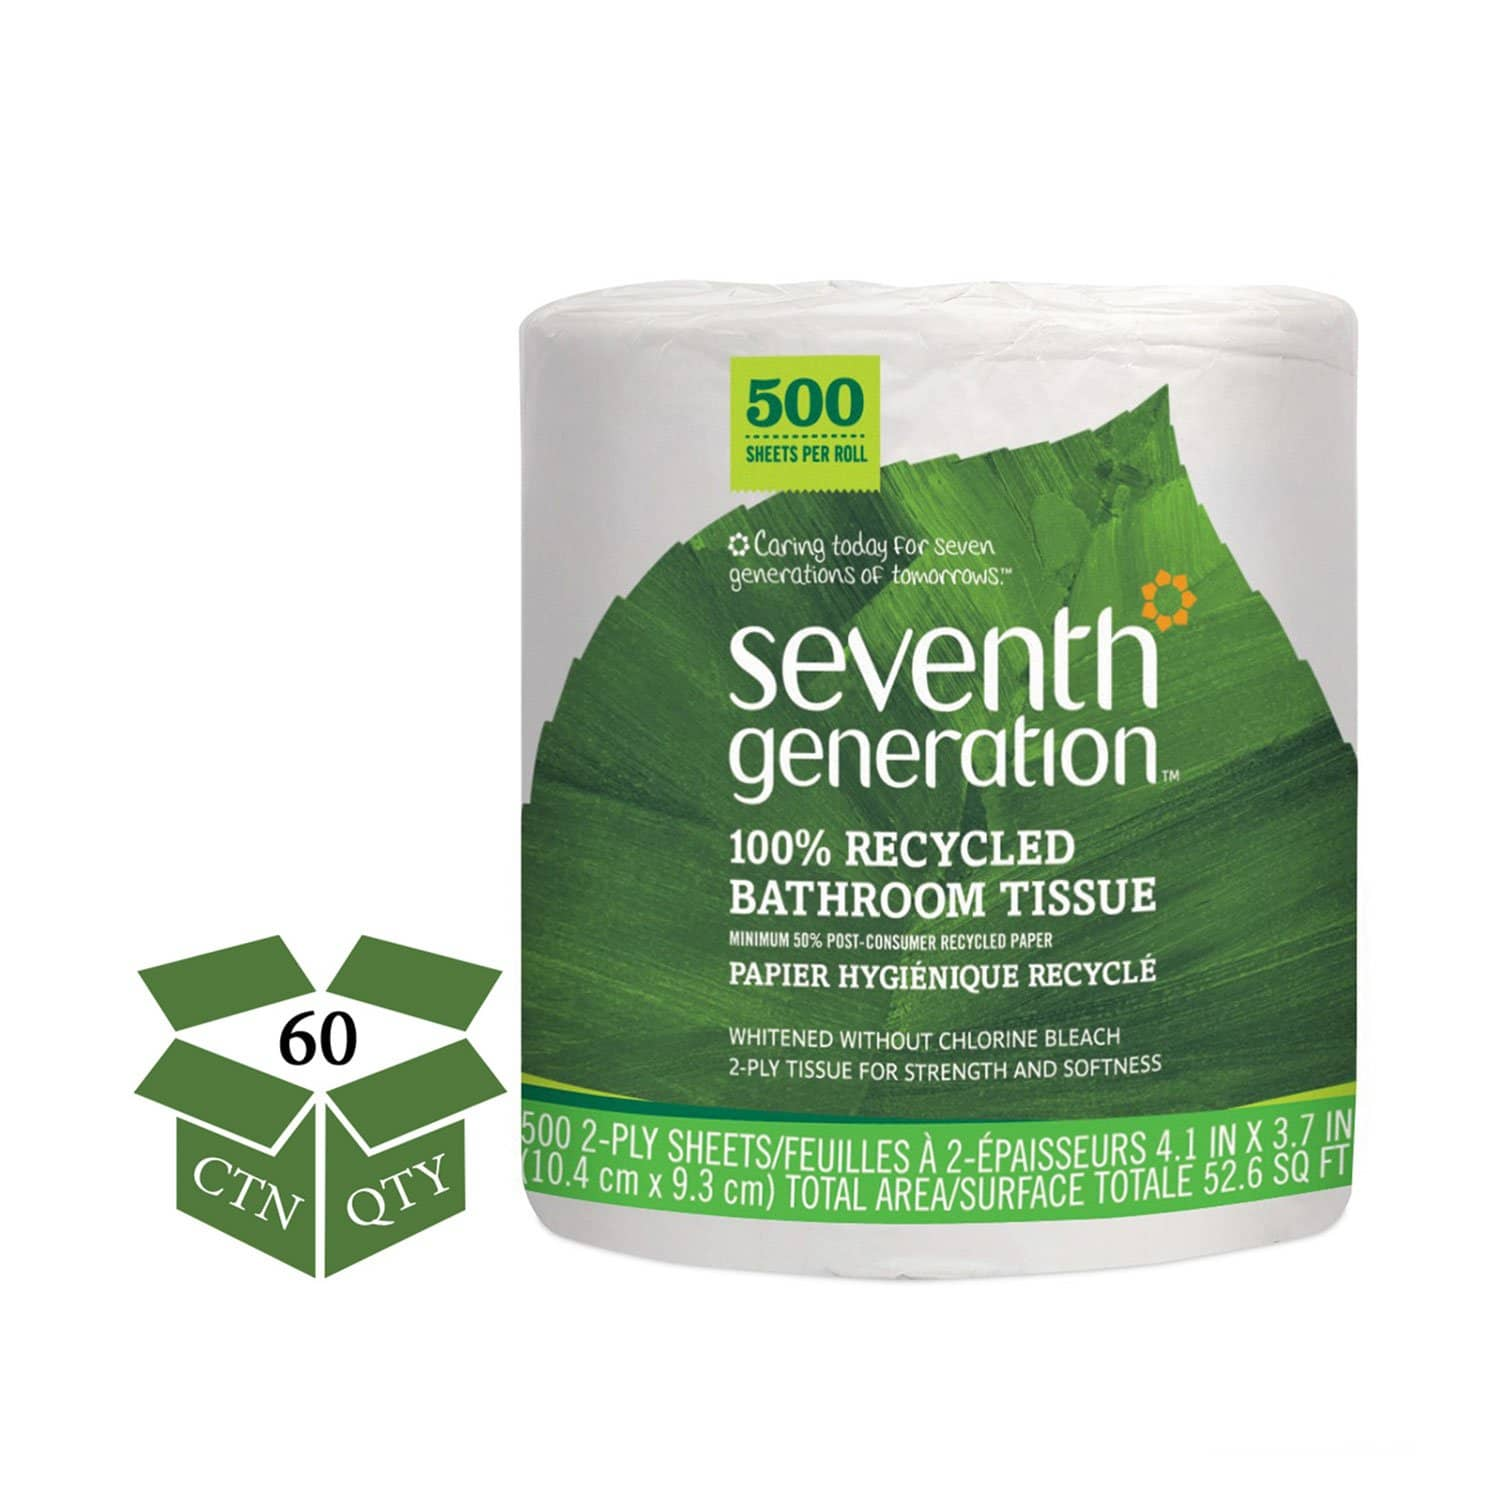 Seventh Generation 100% Recycled Bathroom Tissue, Septic Safe, 2-Ply, White, 500 Sheets/Jumbo Roll, 60/Carton - SEV137038 - TotalRestroom.com